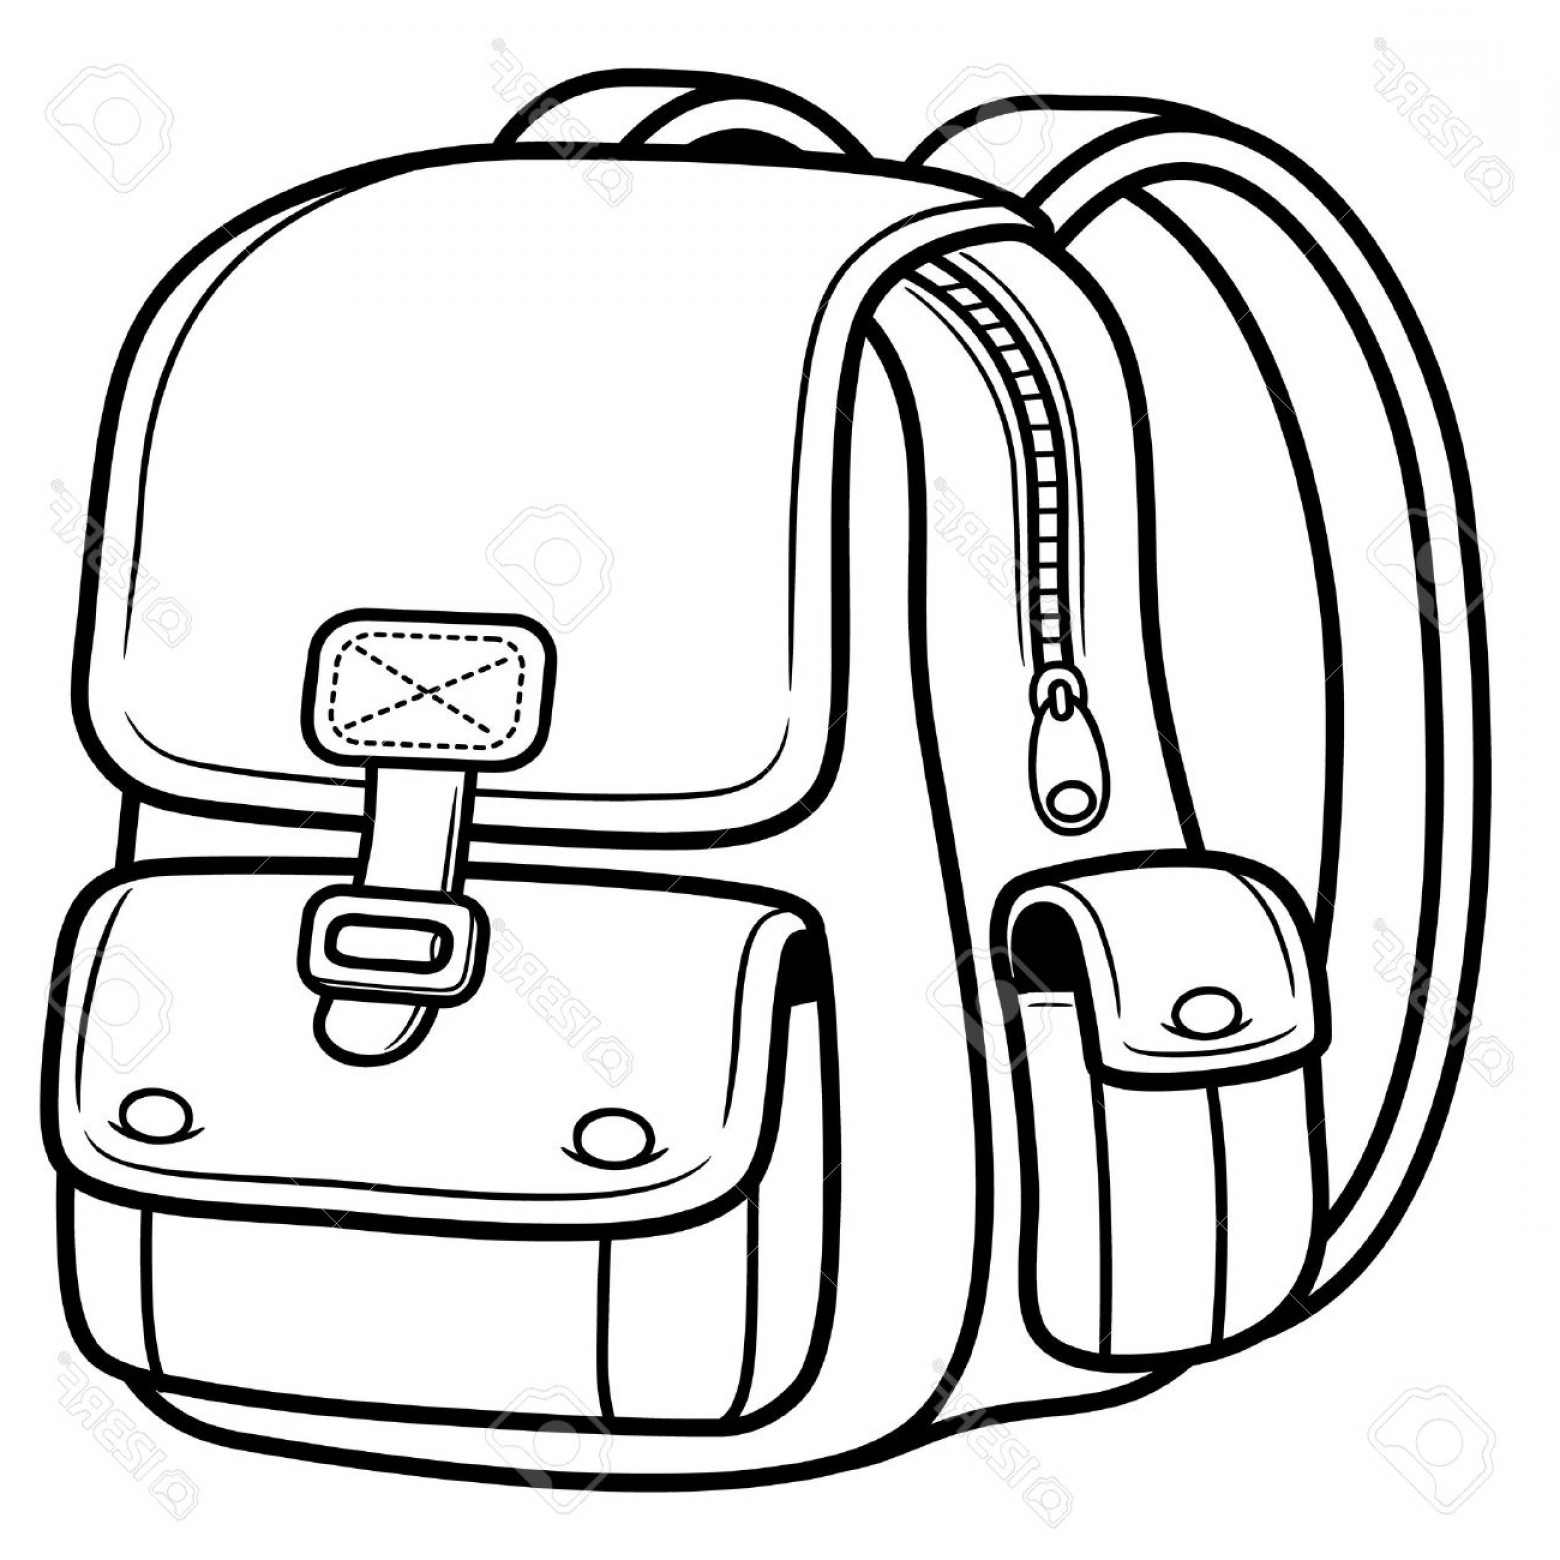 Bag images clipart svg royalty free library Black And White School Bag Clipart svg royalty free library